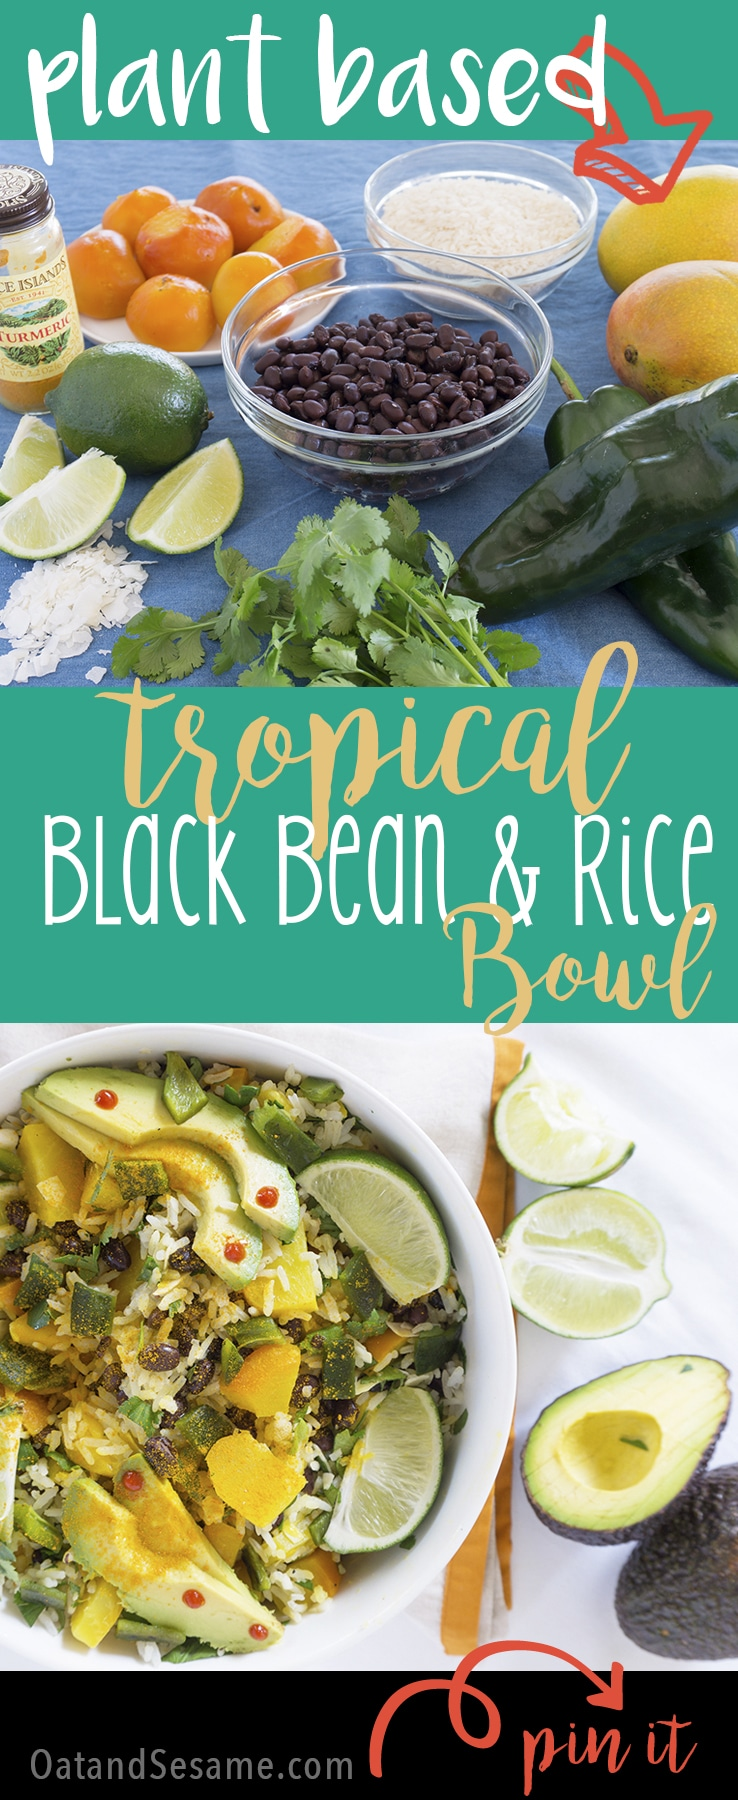 Tropical Black Beans and Rice Bowl has juicy mango, zesty lime, beans, golden beets + rice and gets spiced up with a few dashes of turmeric and sriracha | PLANT BASED | VEGAN | VEGETARIAN | HEALTHY FOOD IN BOWLS | Recipe at OatandSesame.com